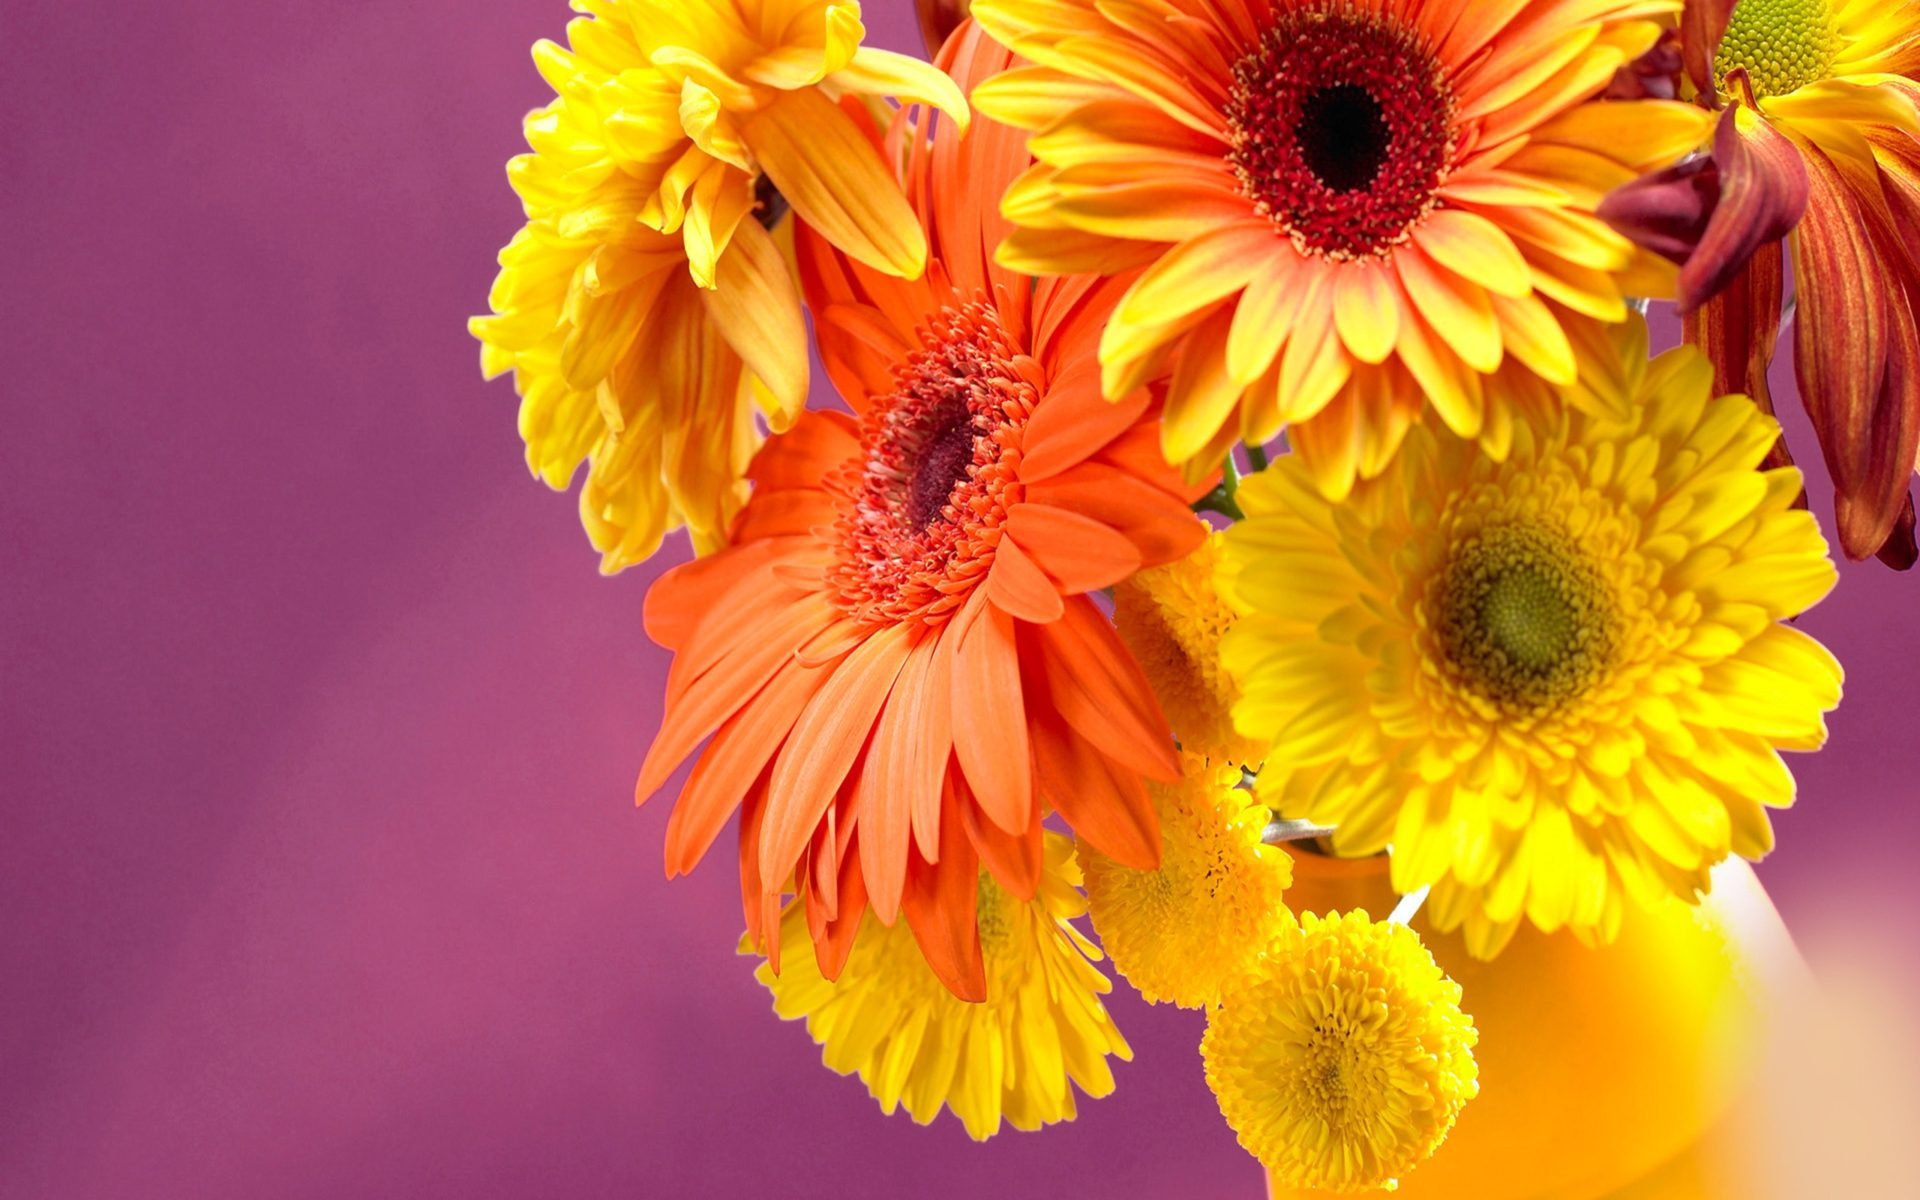 Fall Wallpaper For Android Tablet Gerbera Daisies 6826171 Wallpapers13 Com